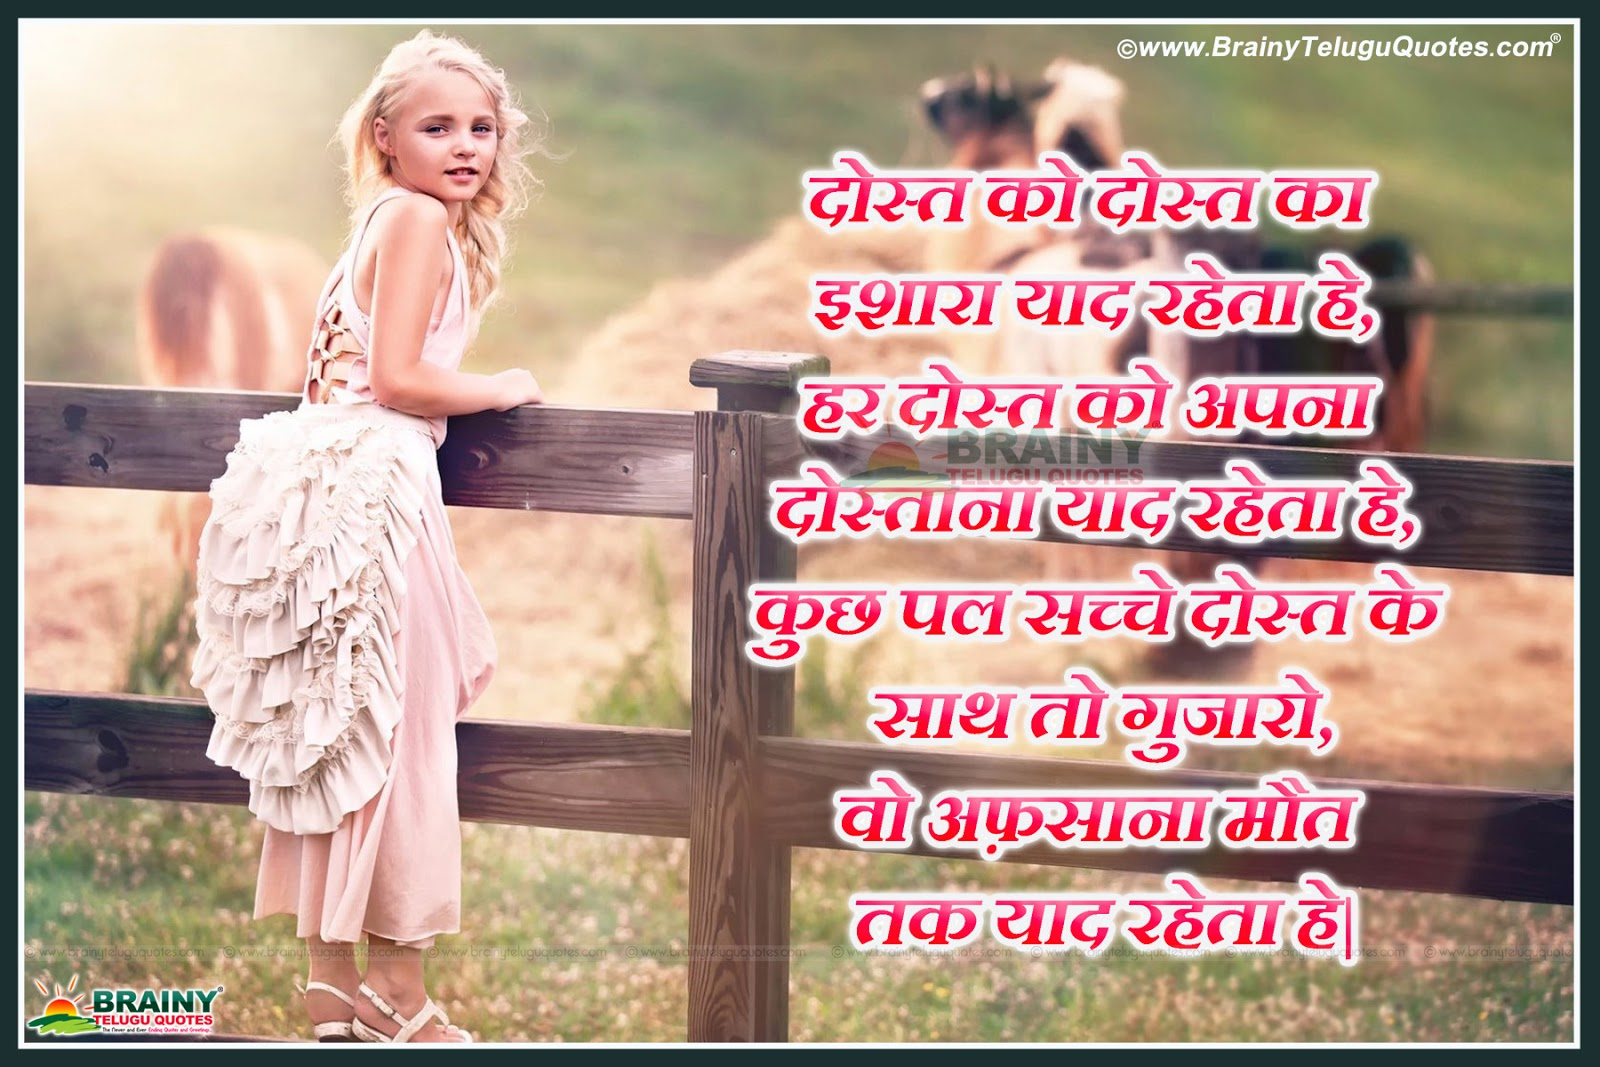 Here is a Latest Hindi Language New True Friendship dosti Shayari and Wallpapers Daily